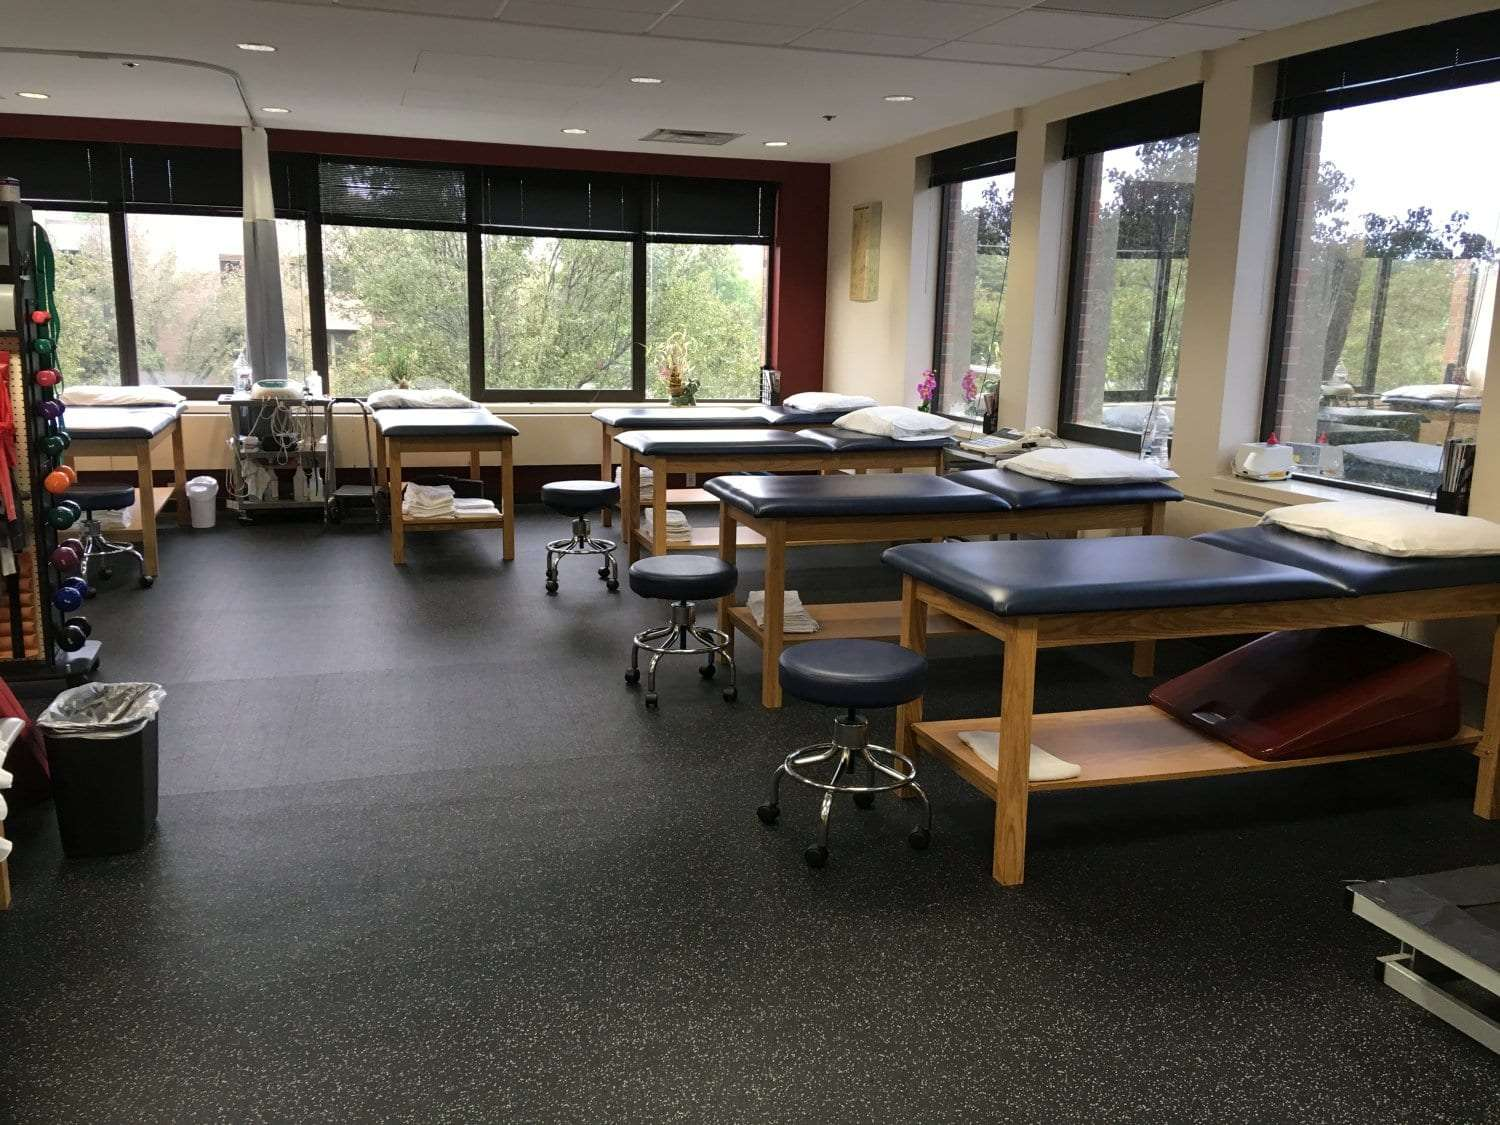 Here is a photo of 6 stretch beds surrounding our training room at our physical therapy clinic in Oradell, New Jersey.